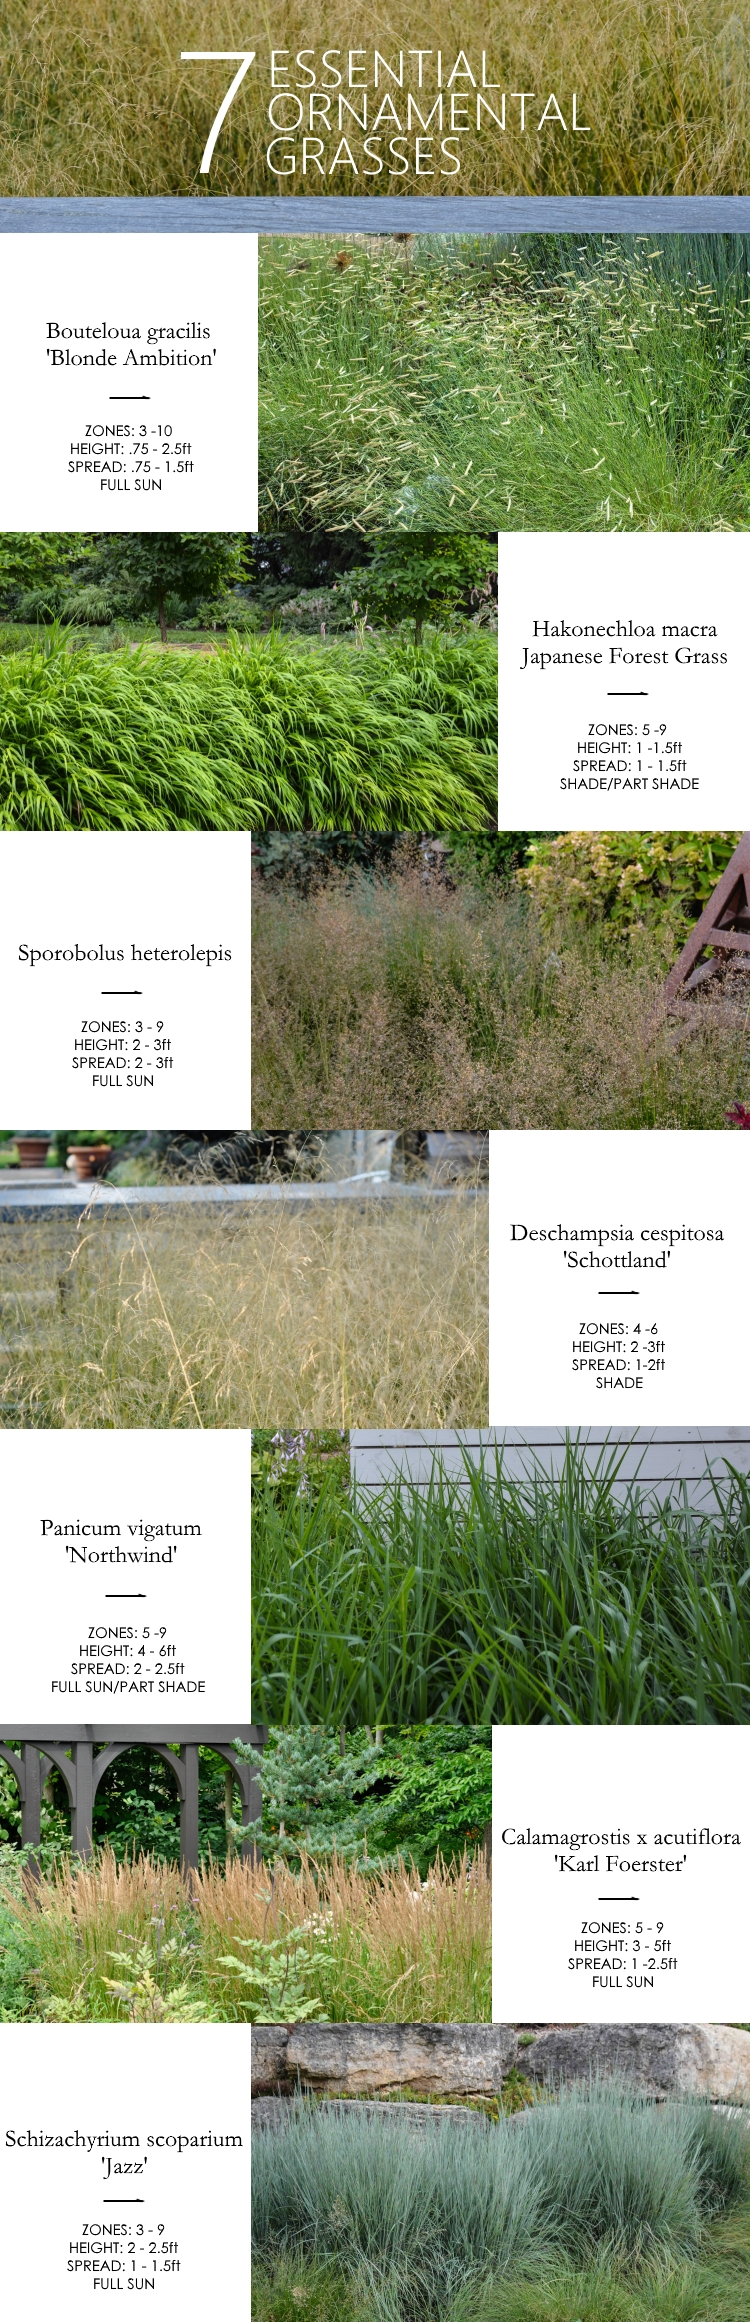 7 Essential Ornamental Grasses, Thinking Outside the Boxwood